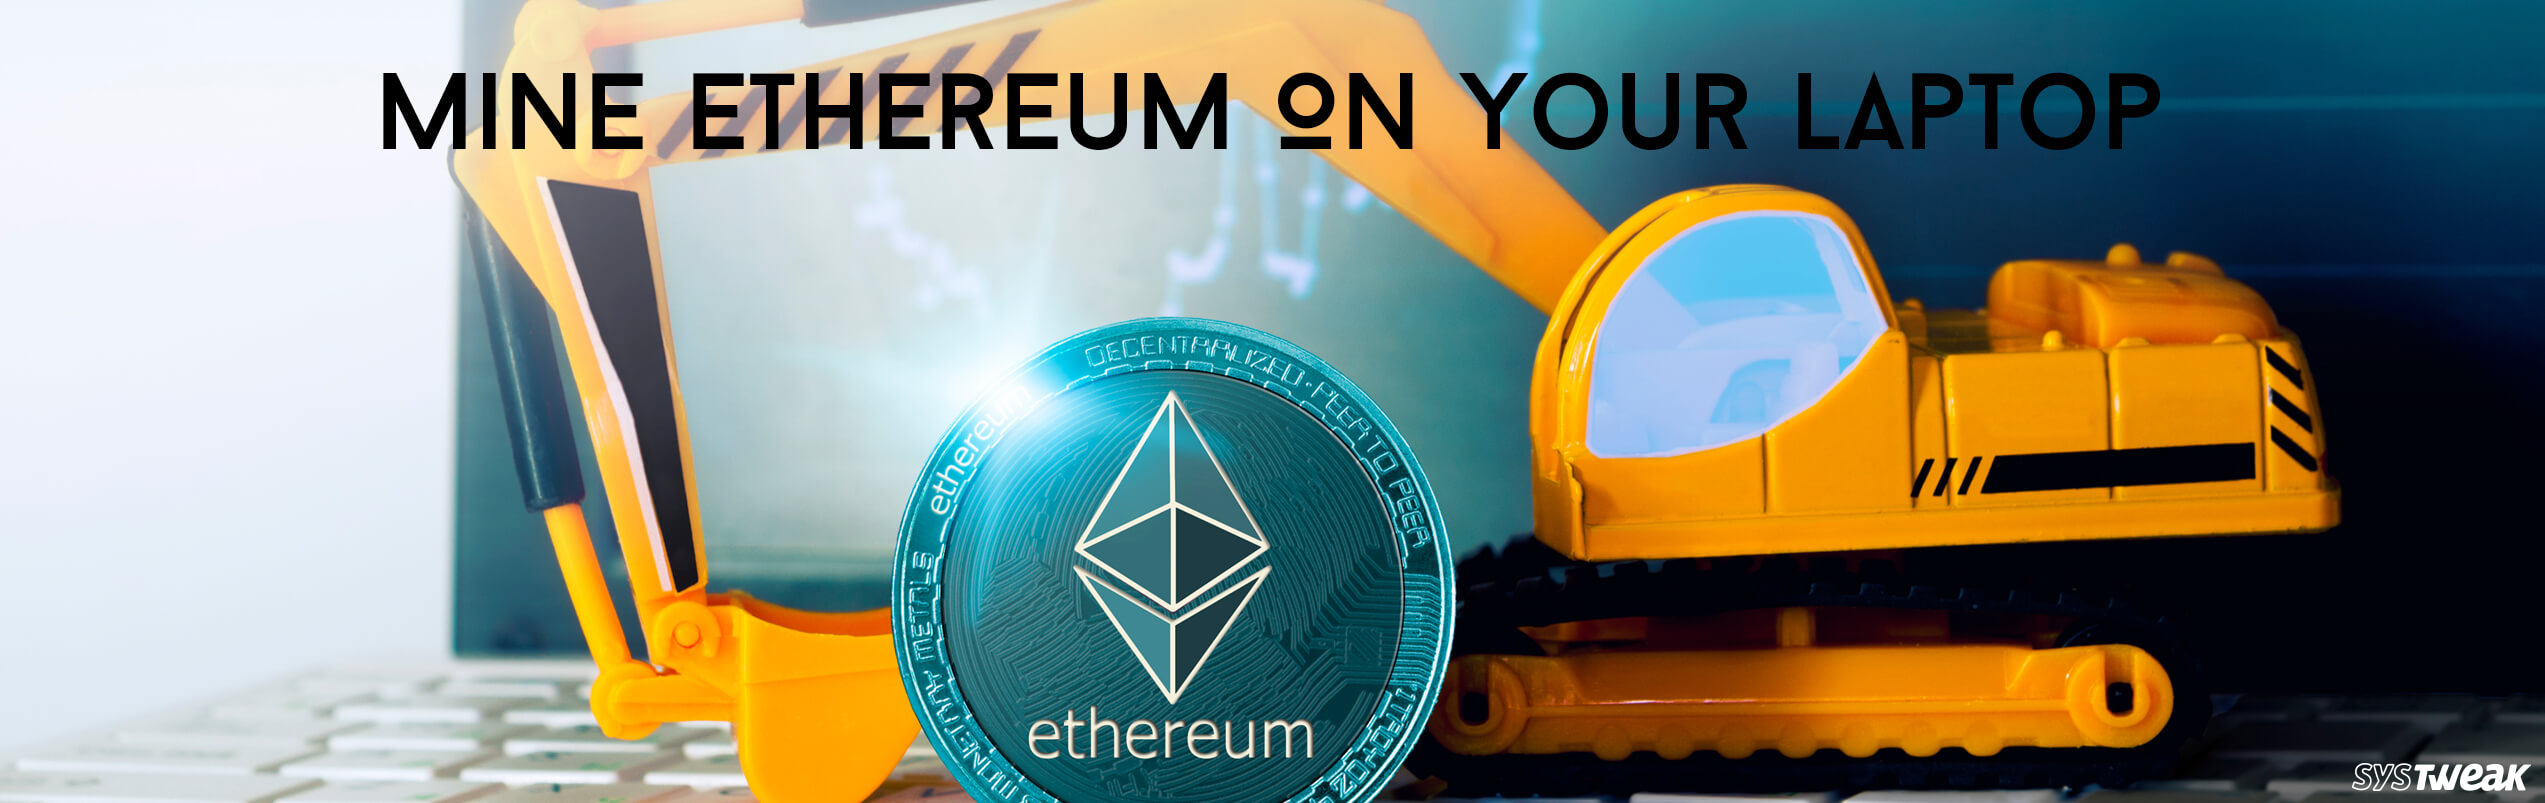 How To Mine Ethereum On Your Laptop